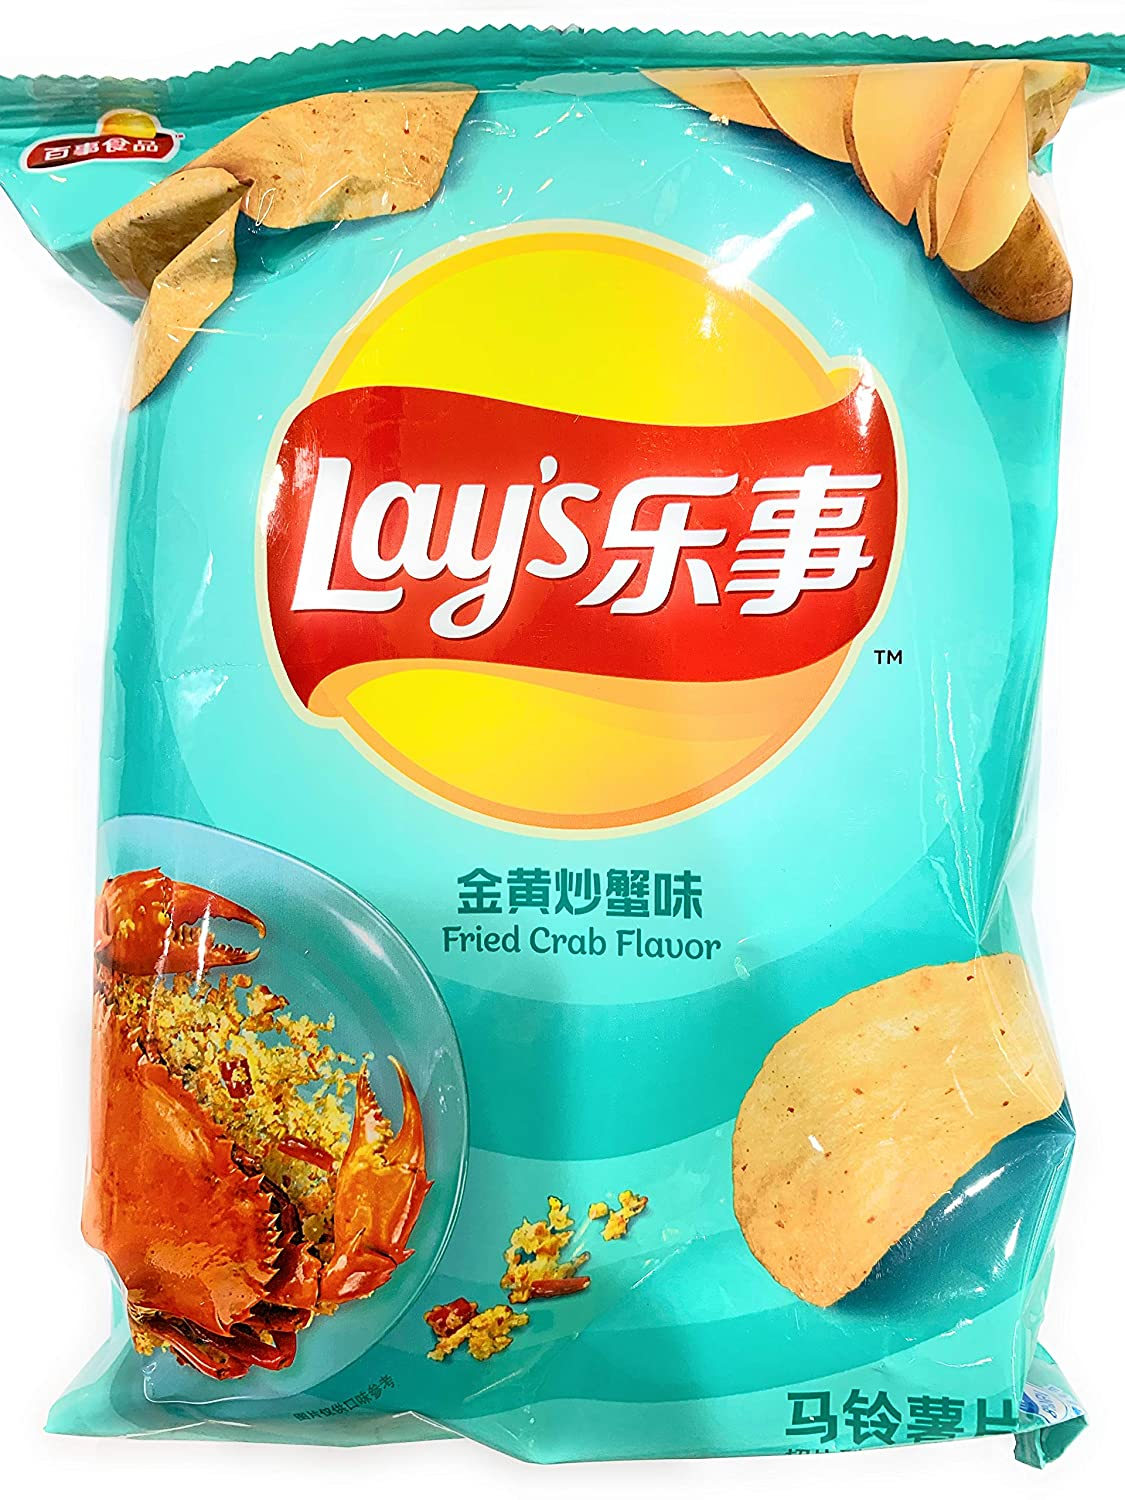 Lays Fried Crab Flavor